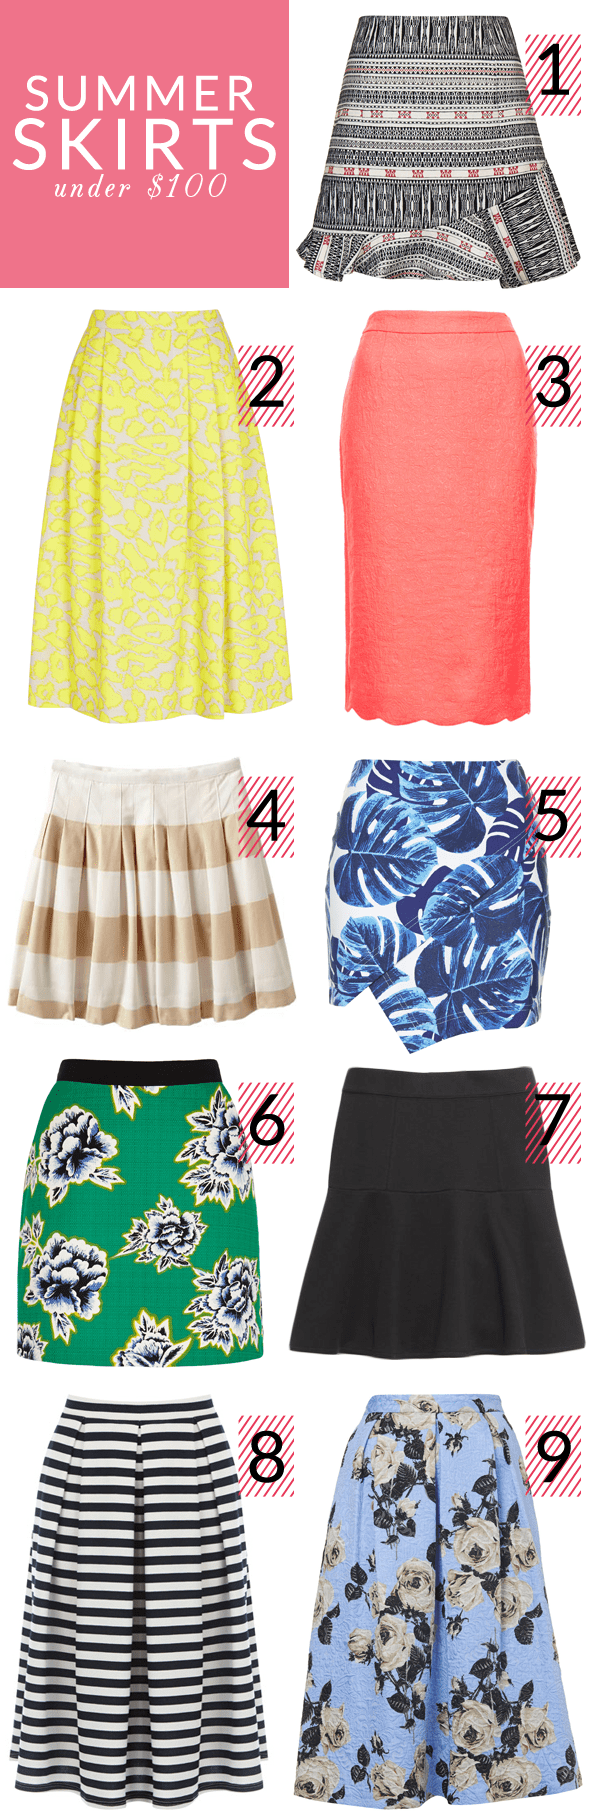 Poor Little It Girl - Summer Skirts Under $100